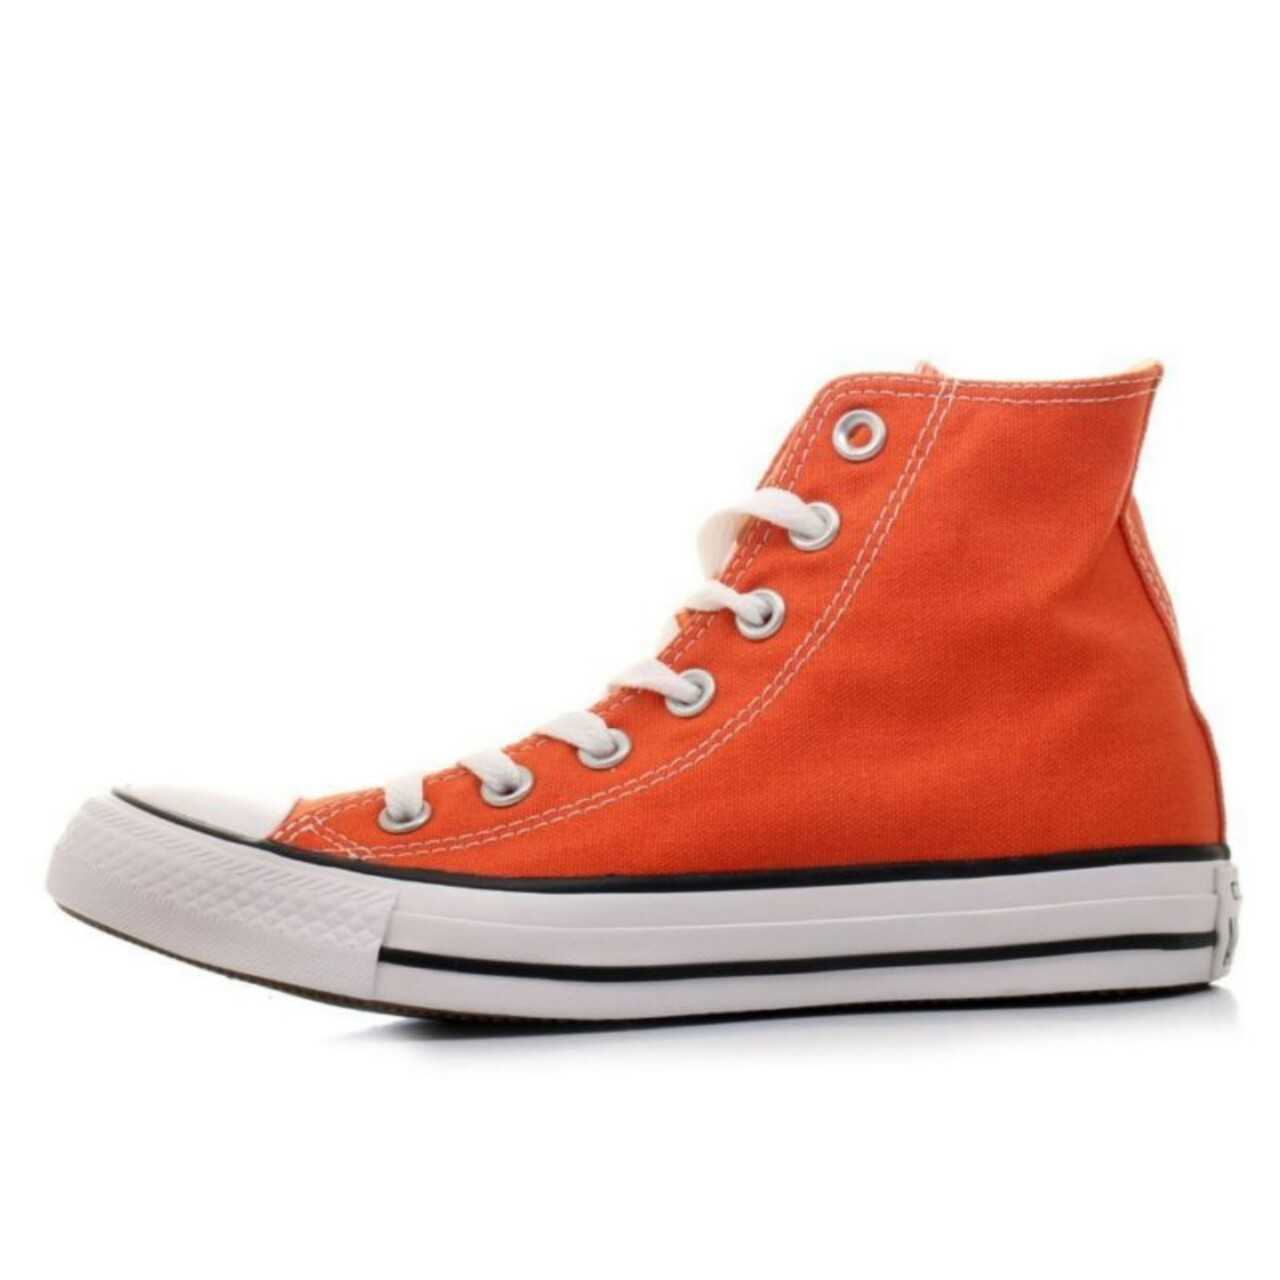 2converse all star arancione